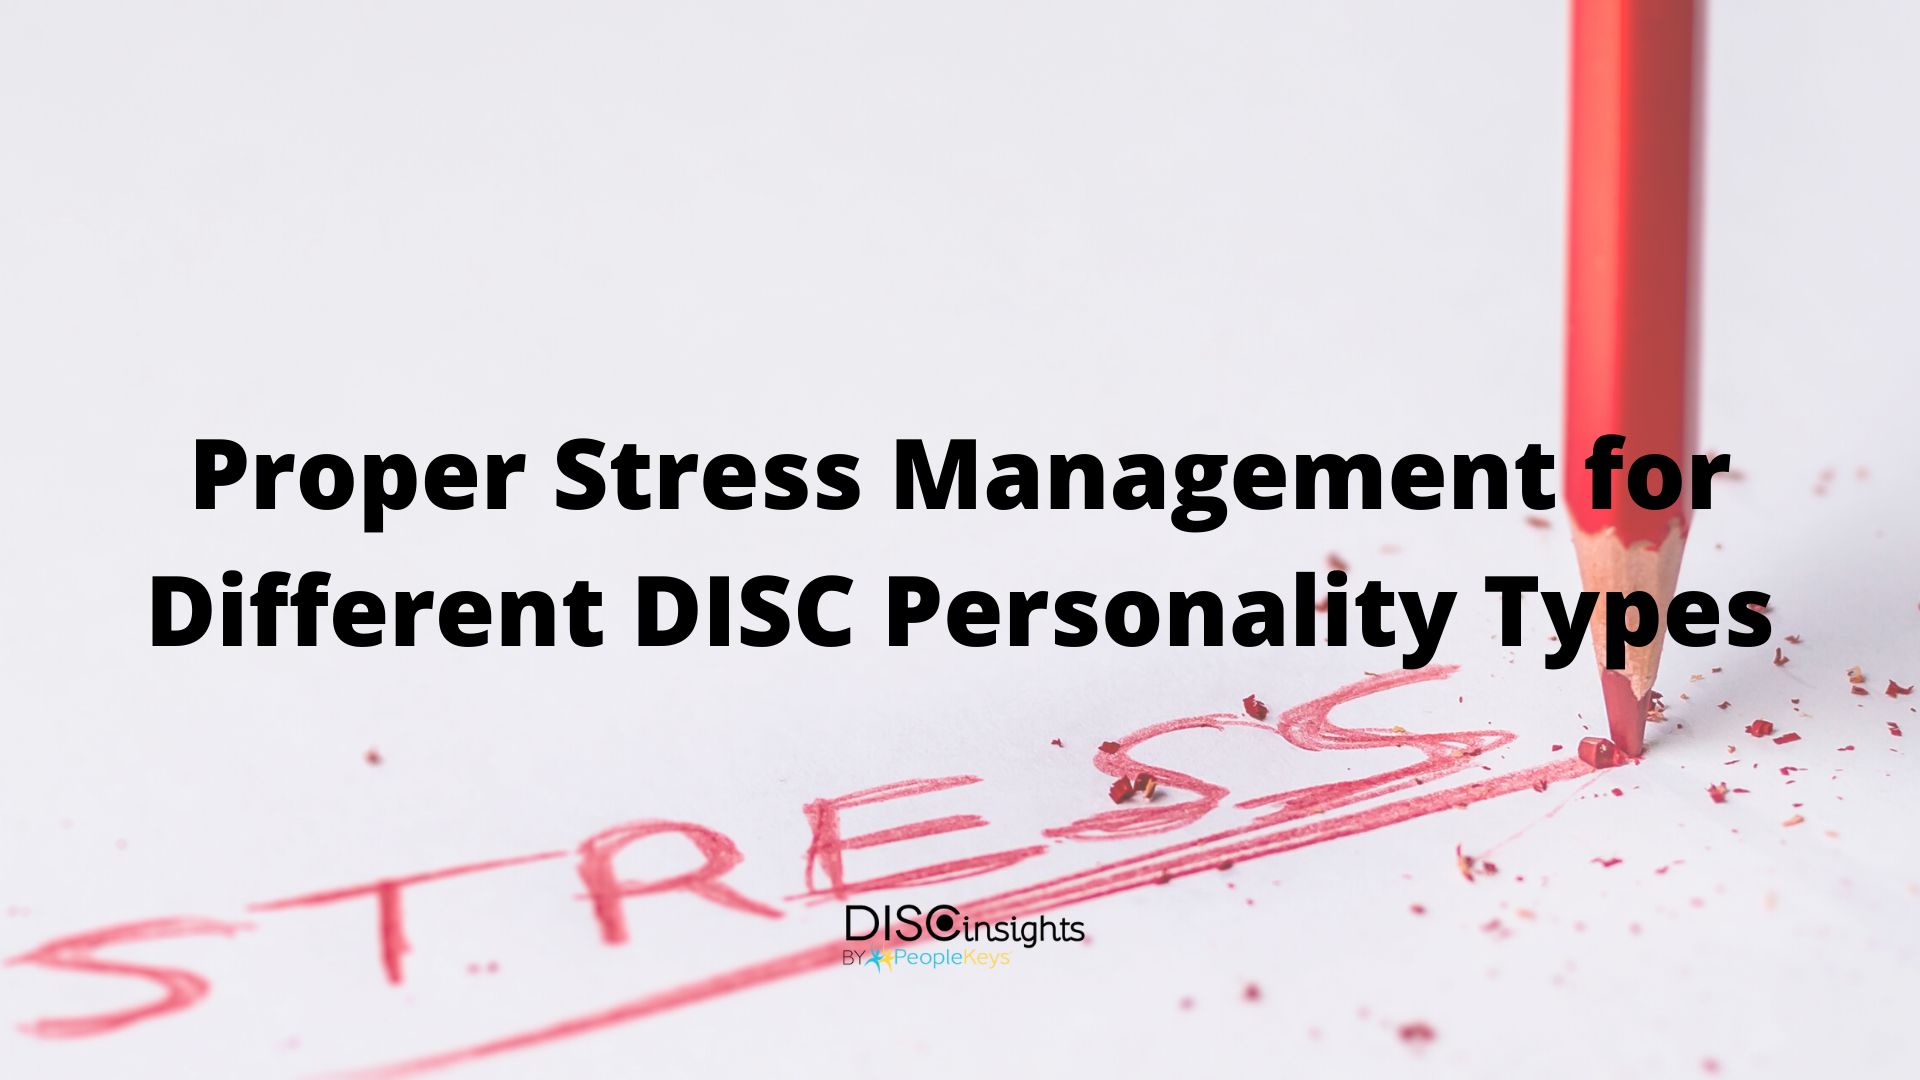 Stress Management for Different DISC Personalities